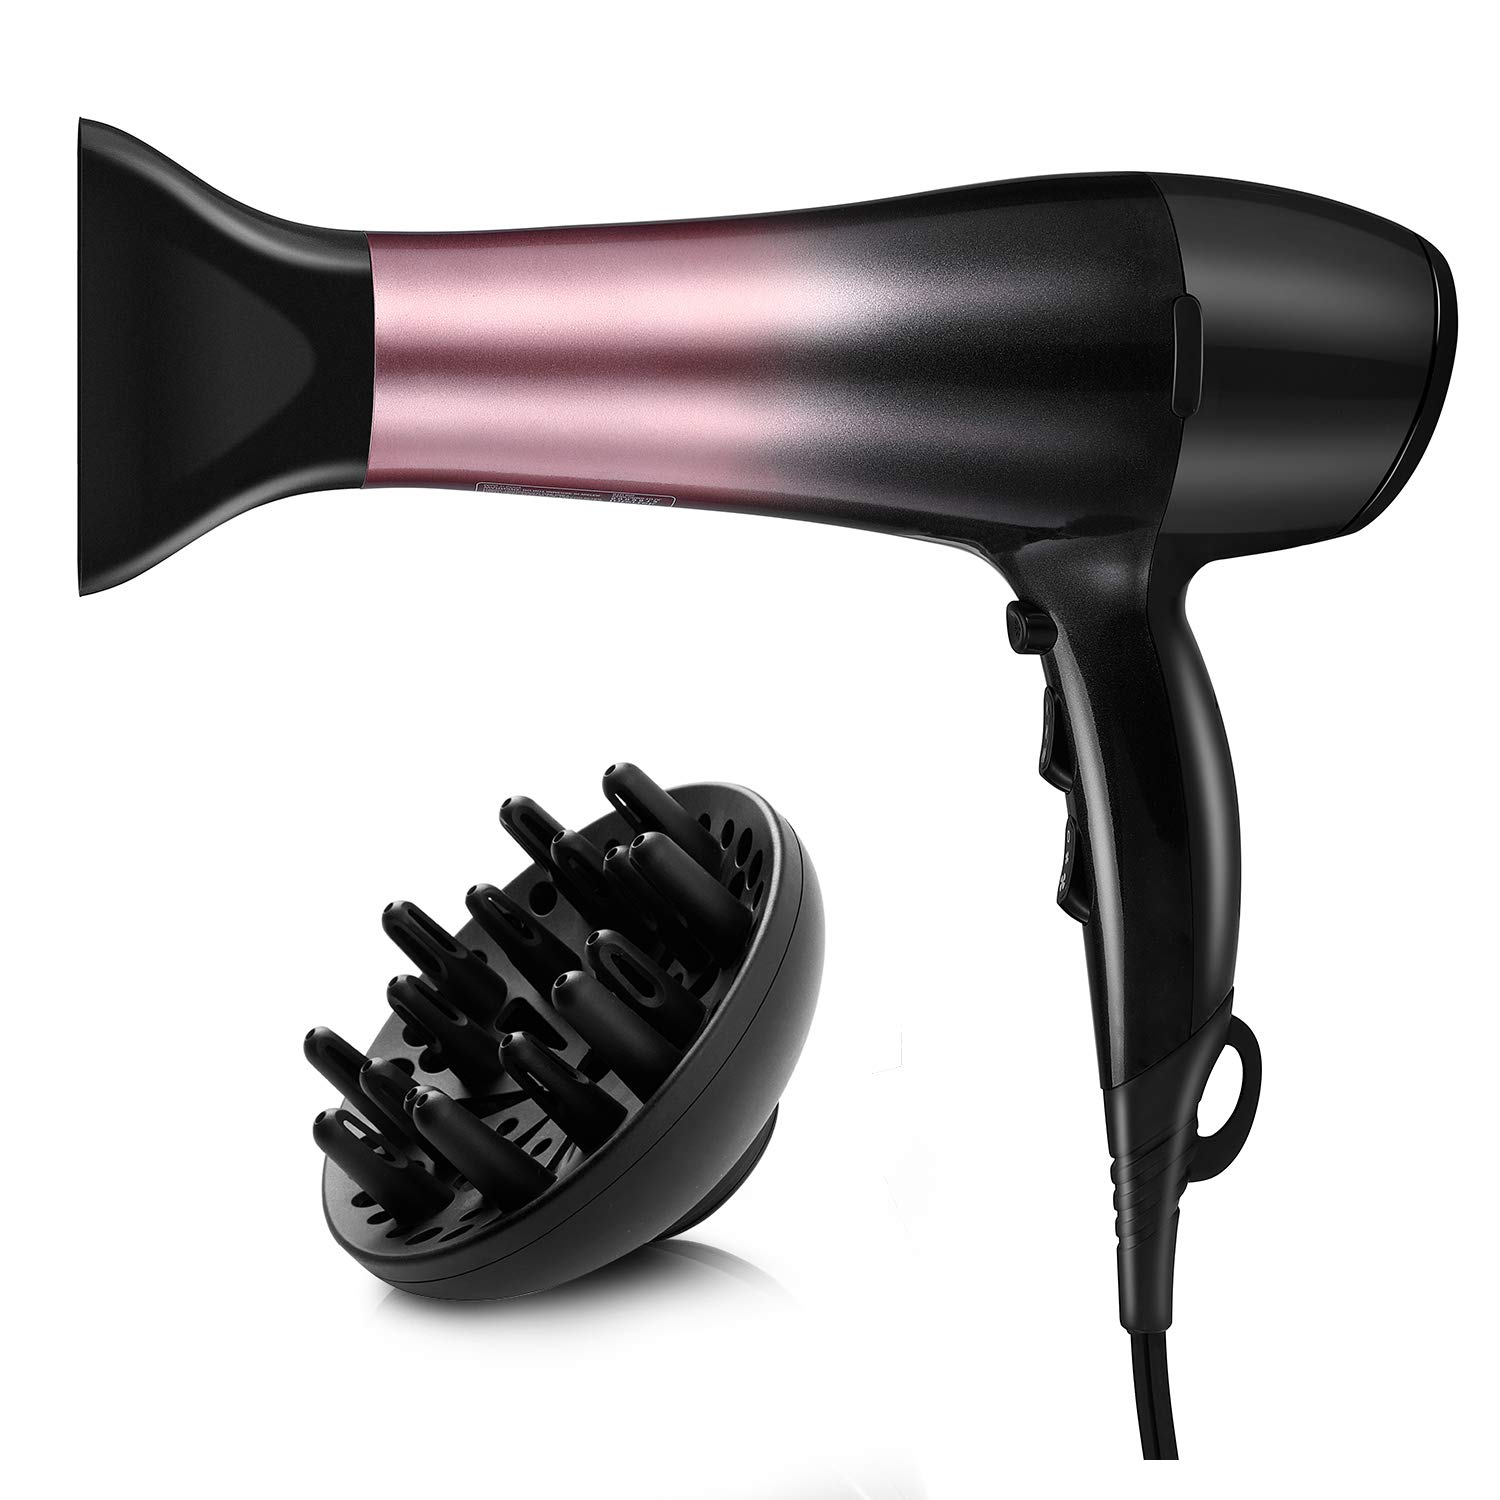 KIPOZI 1875W Ionic Hair Dryer, Professional Powerful Fast Dry Blow Dryer, Lightweight and Quiet Salon Hairdryer- with Diffuser and Concentrator Attachments, Adjustable Heat&Speed, Rose Pink by KIPOZI